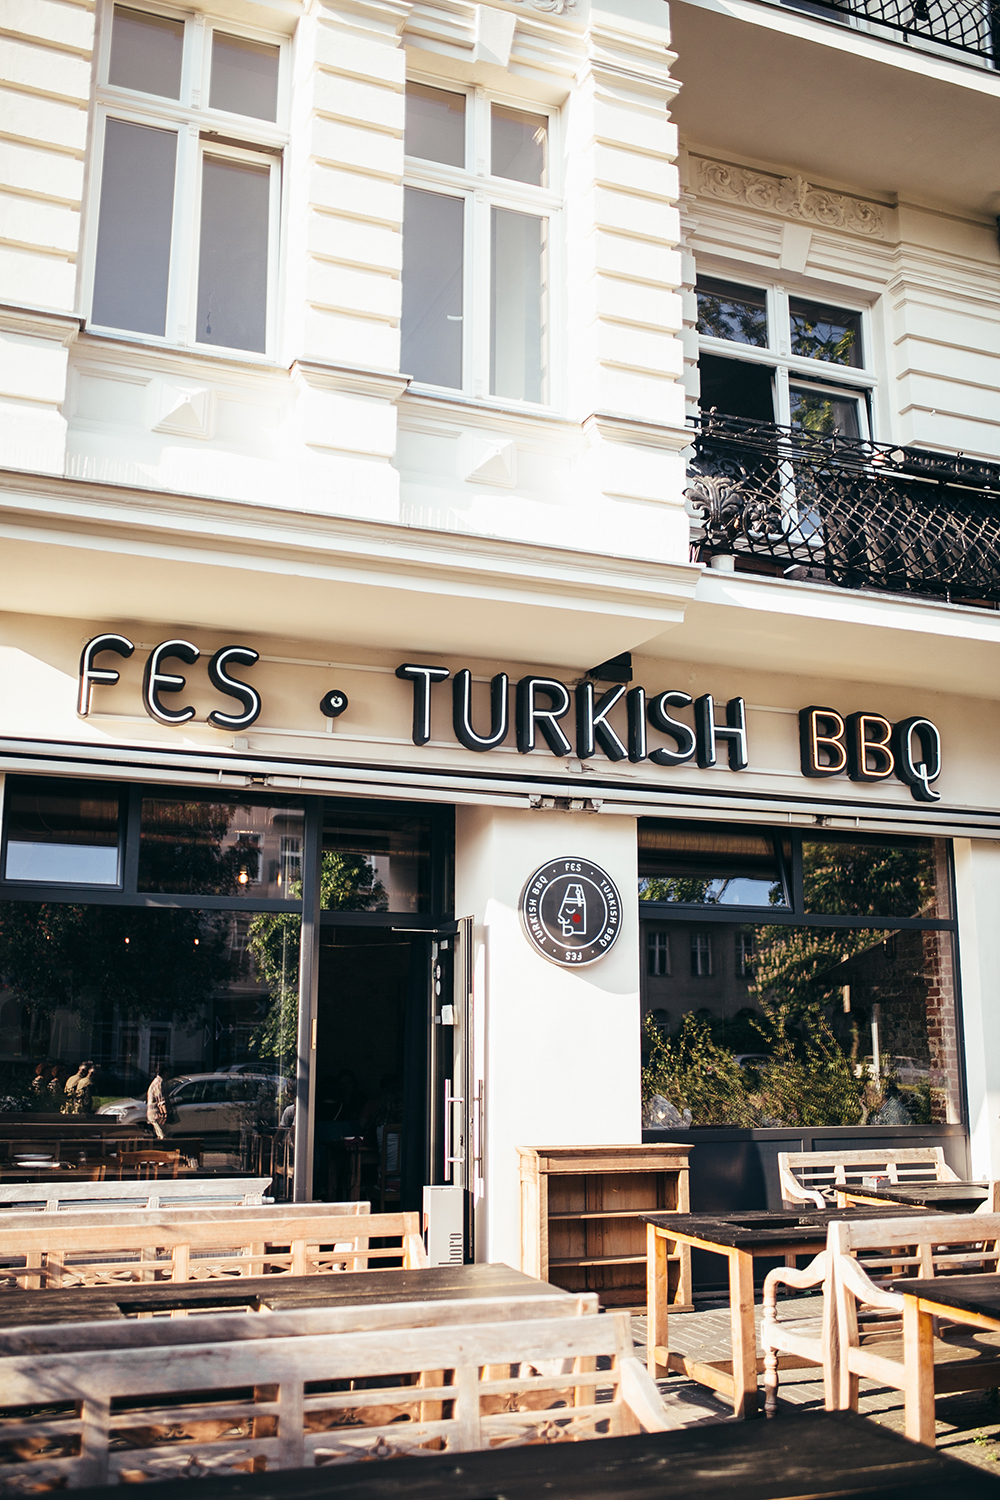 Restaurant_Turkish_Food_03.jpg